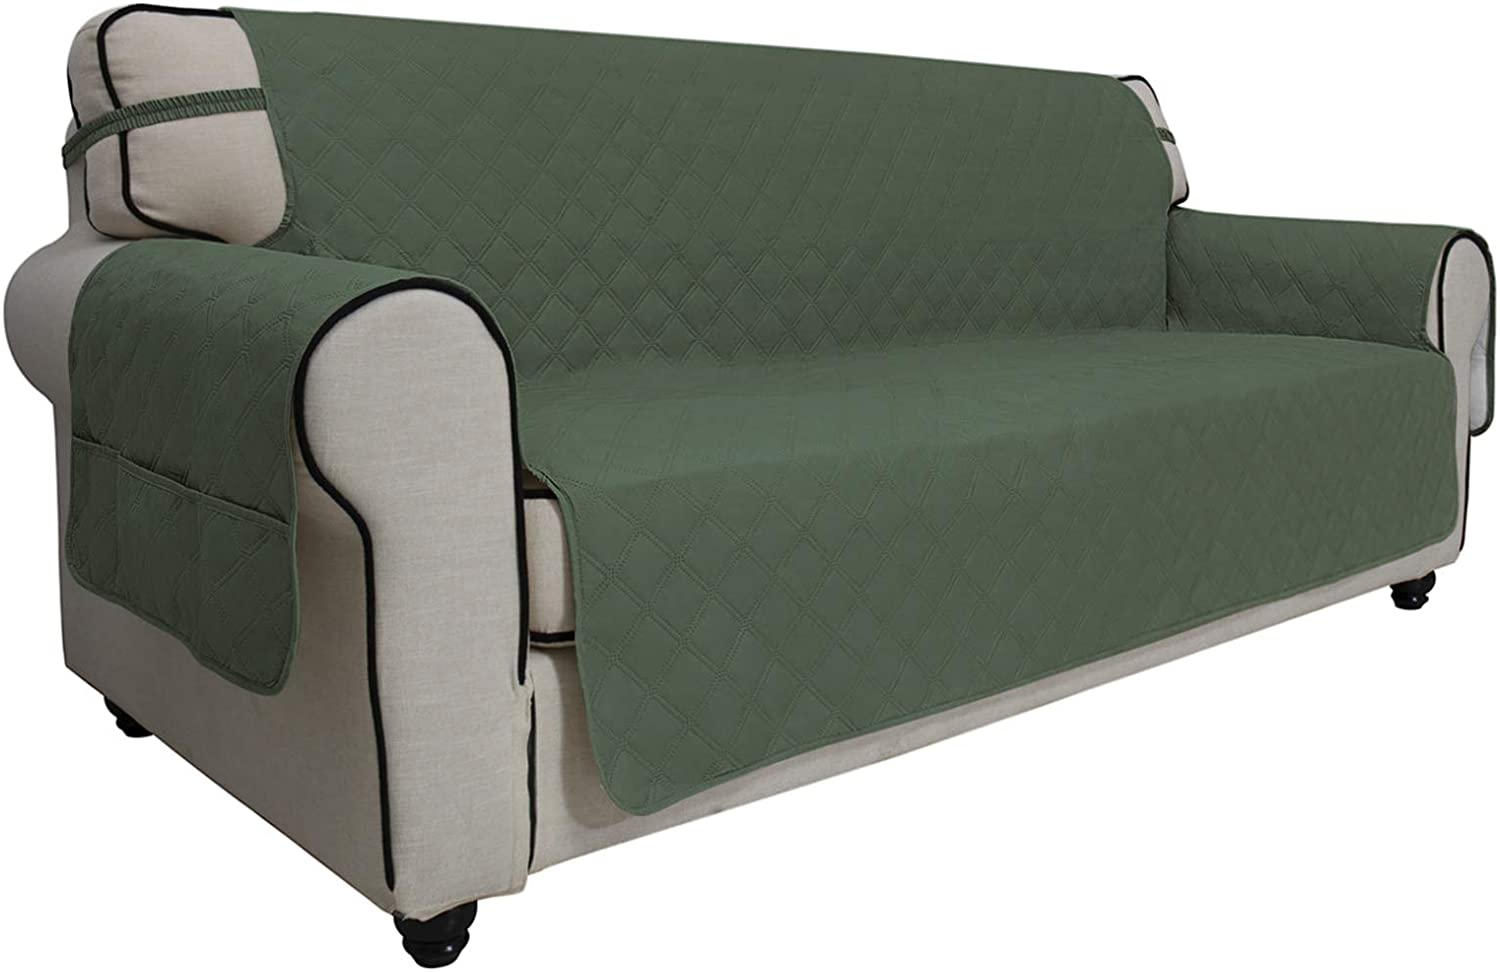 Easy-Going Sofa Slipcover Waterproof Price reduction Couch Selling and selling Cover C Non-Slip